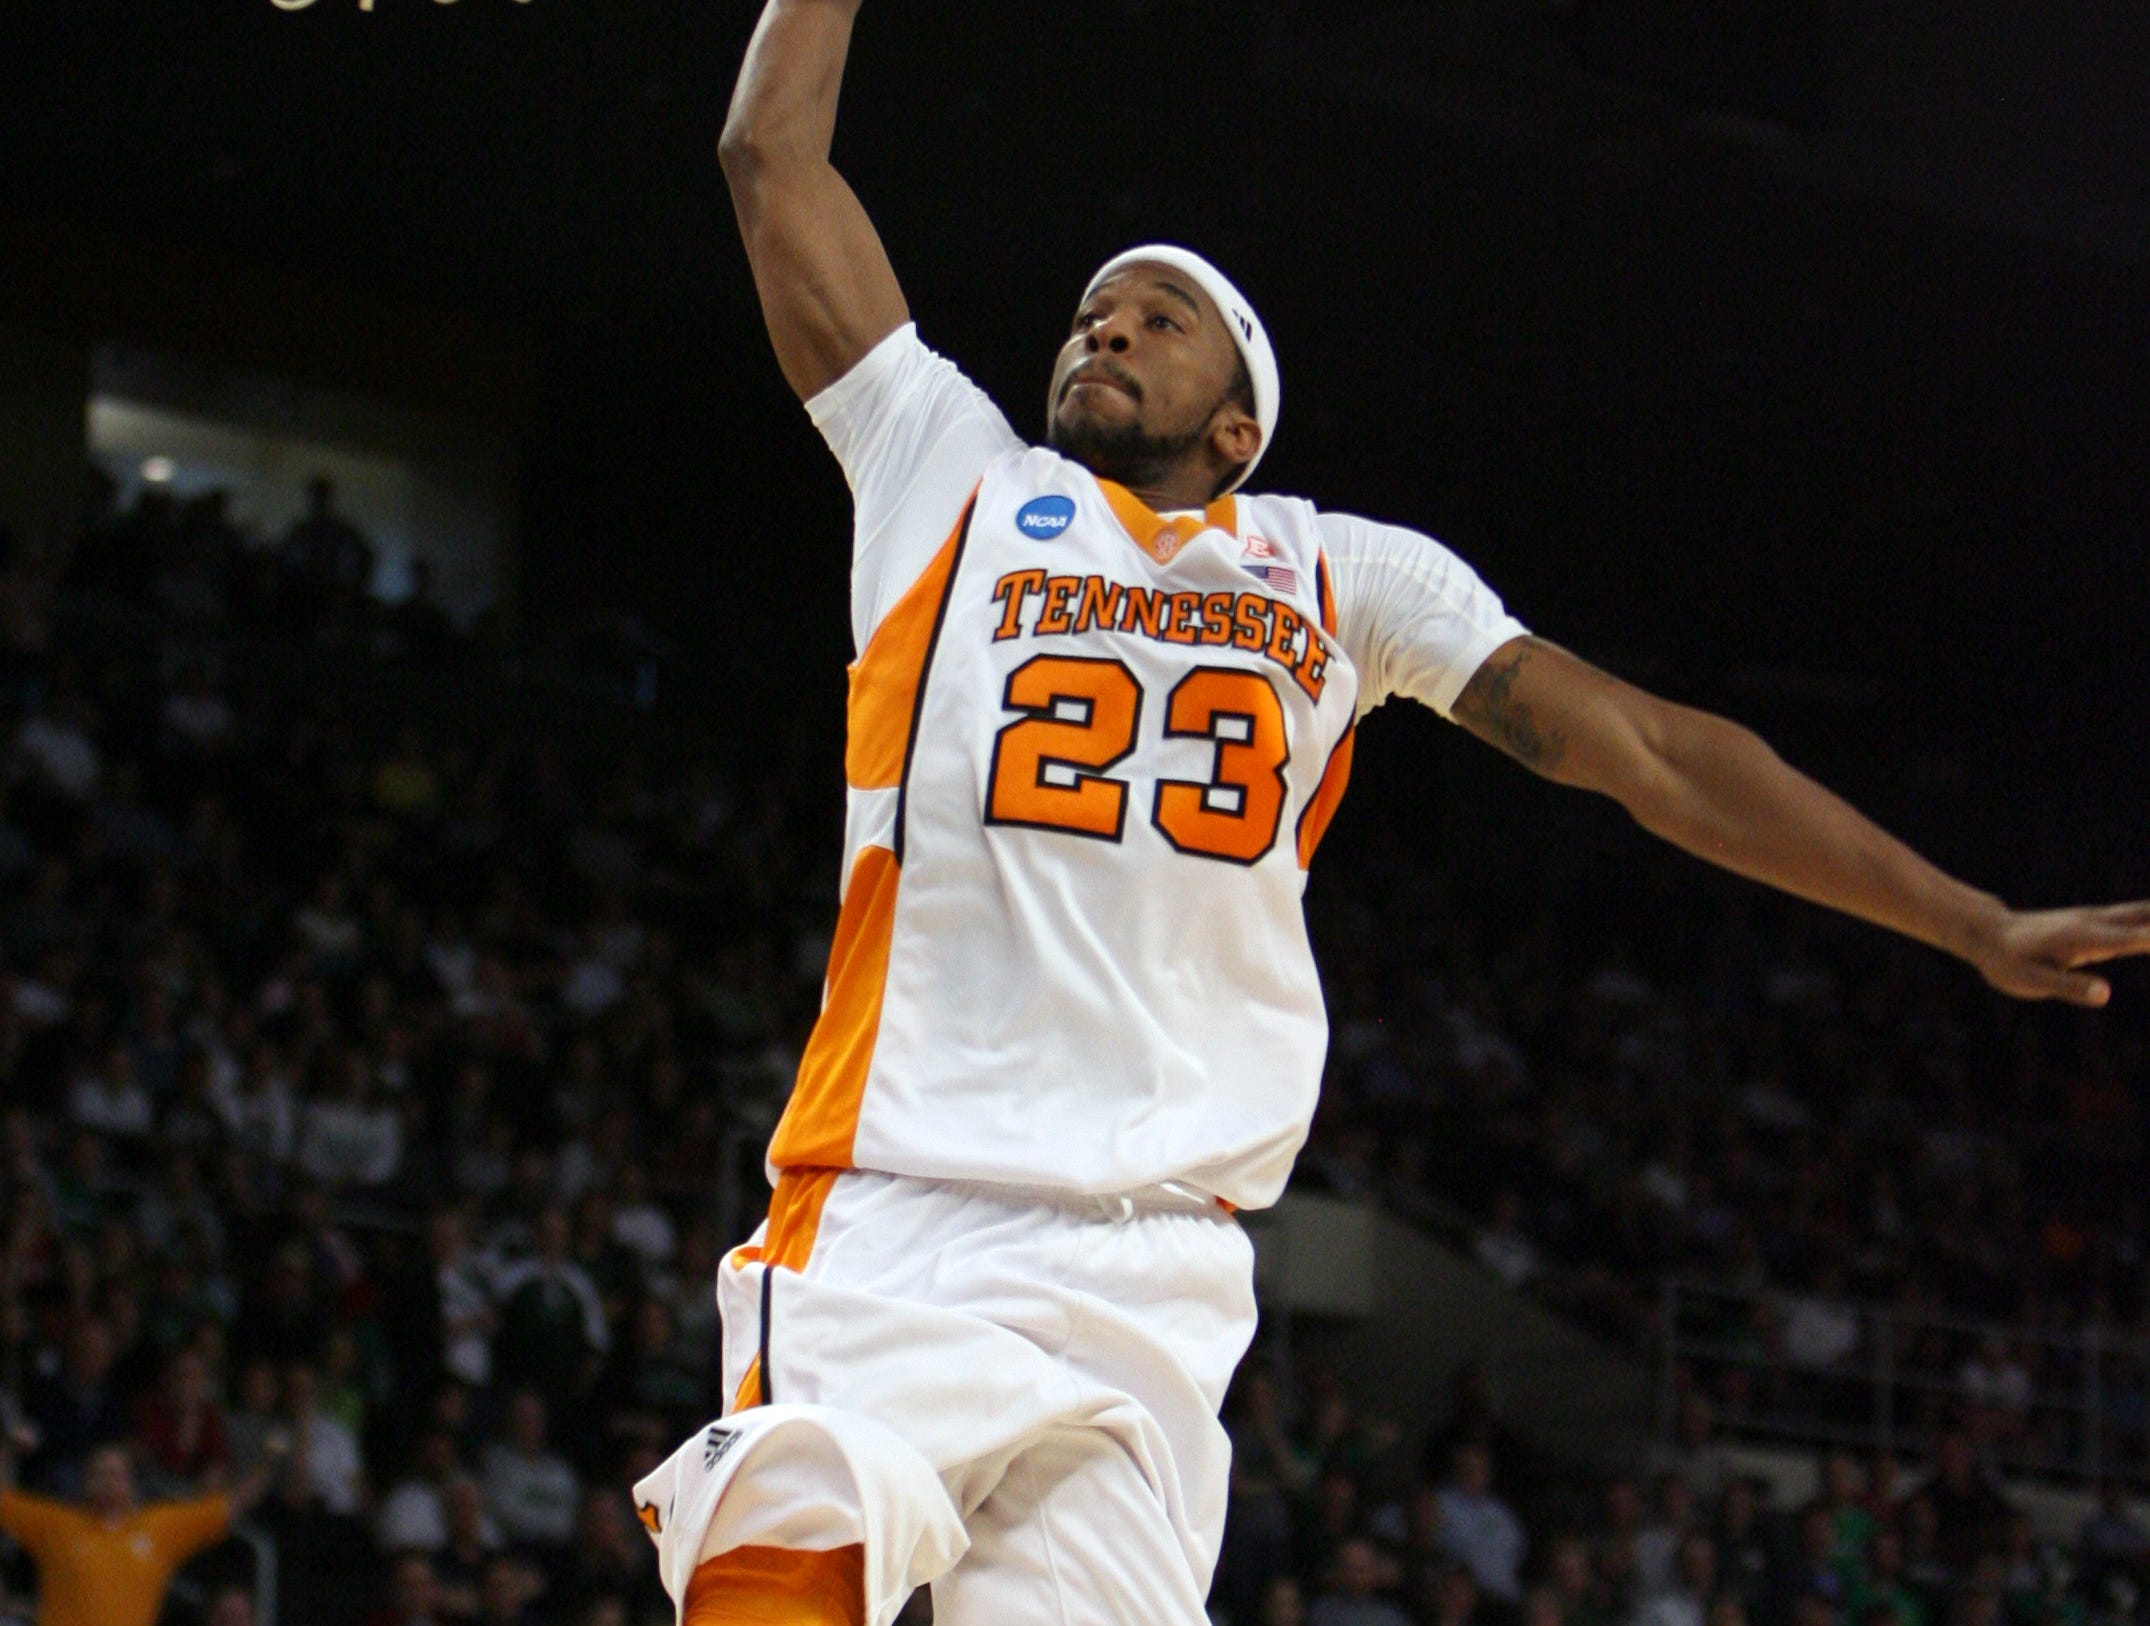 Tennessee's Cameron Tatum goes in for a slam during the game against Ohio during the second round of the NCAA tournament in Providence, R.I. Saturday, Mar. 20, 2010.  Tatum scored 9 points for the Vols during their 83-68 win over the Bobcats.